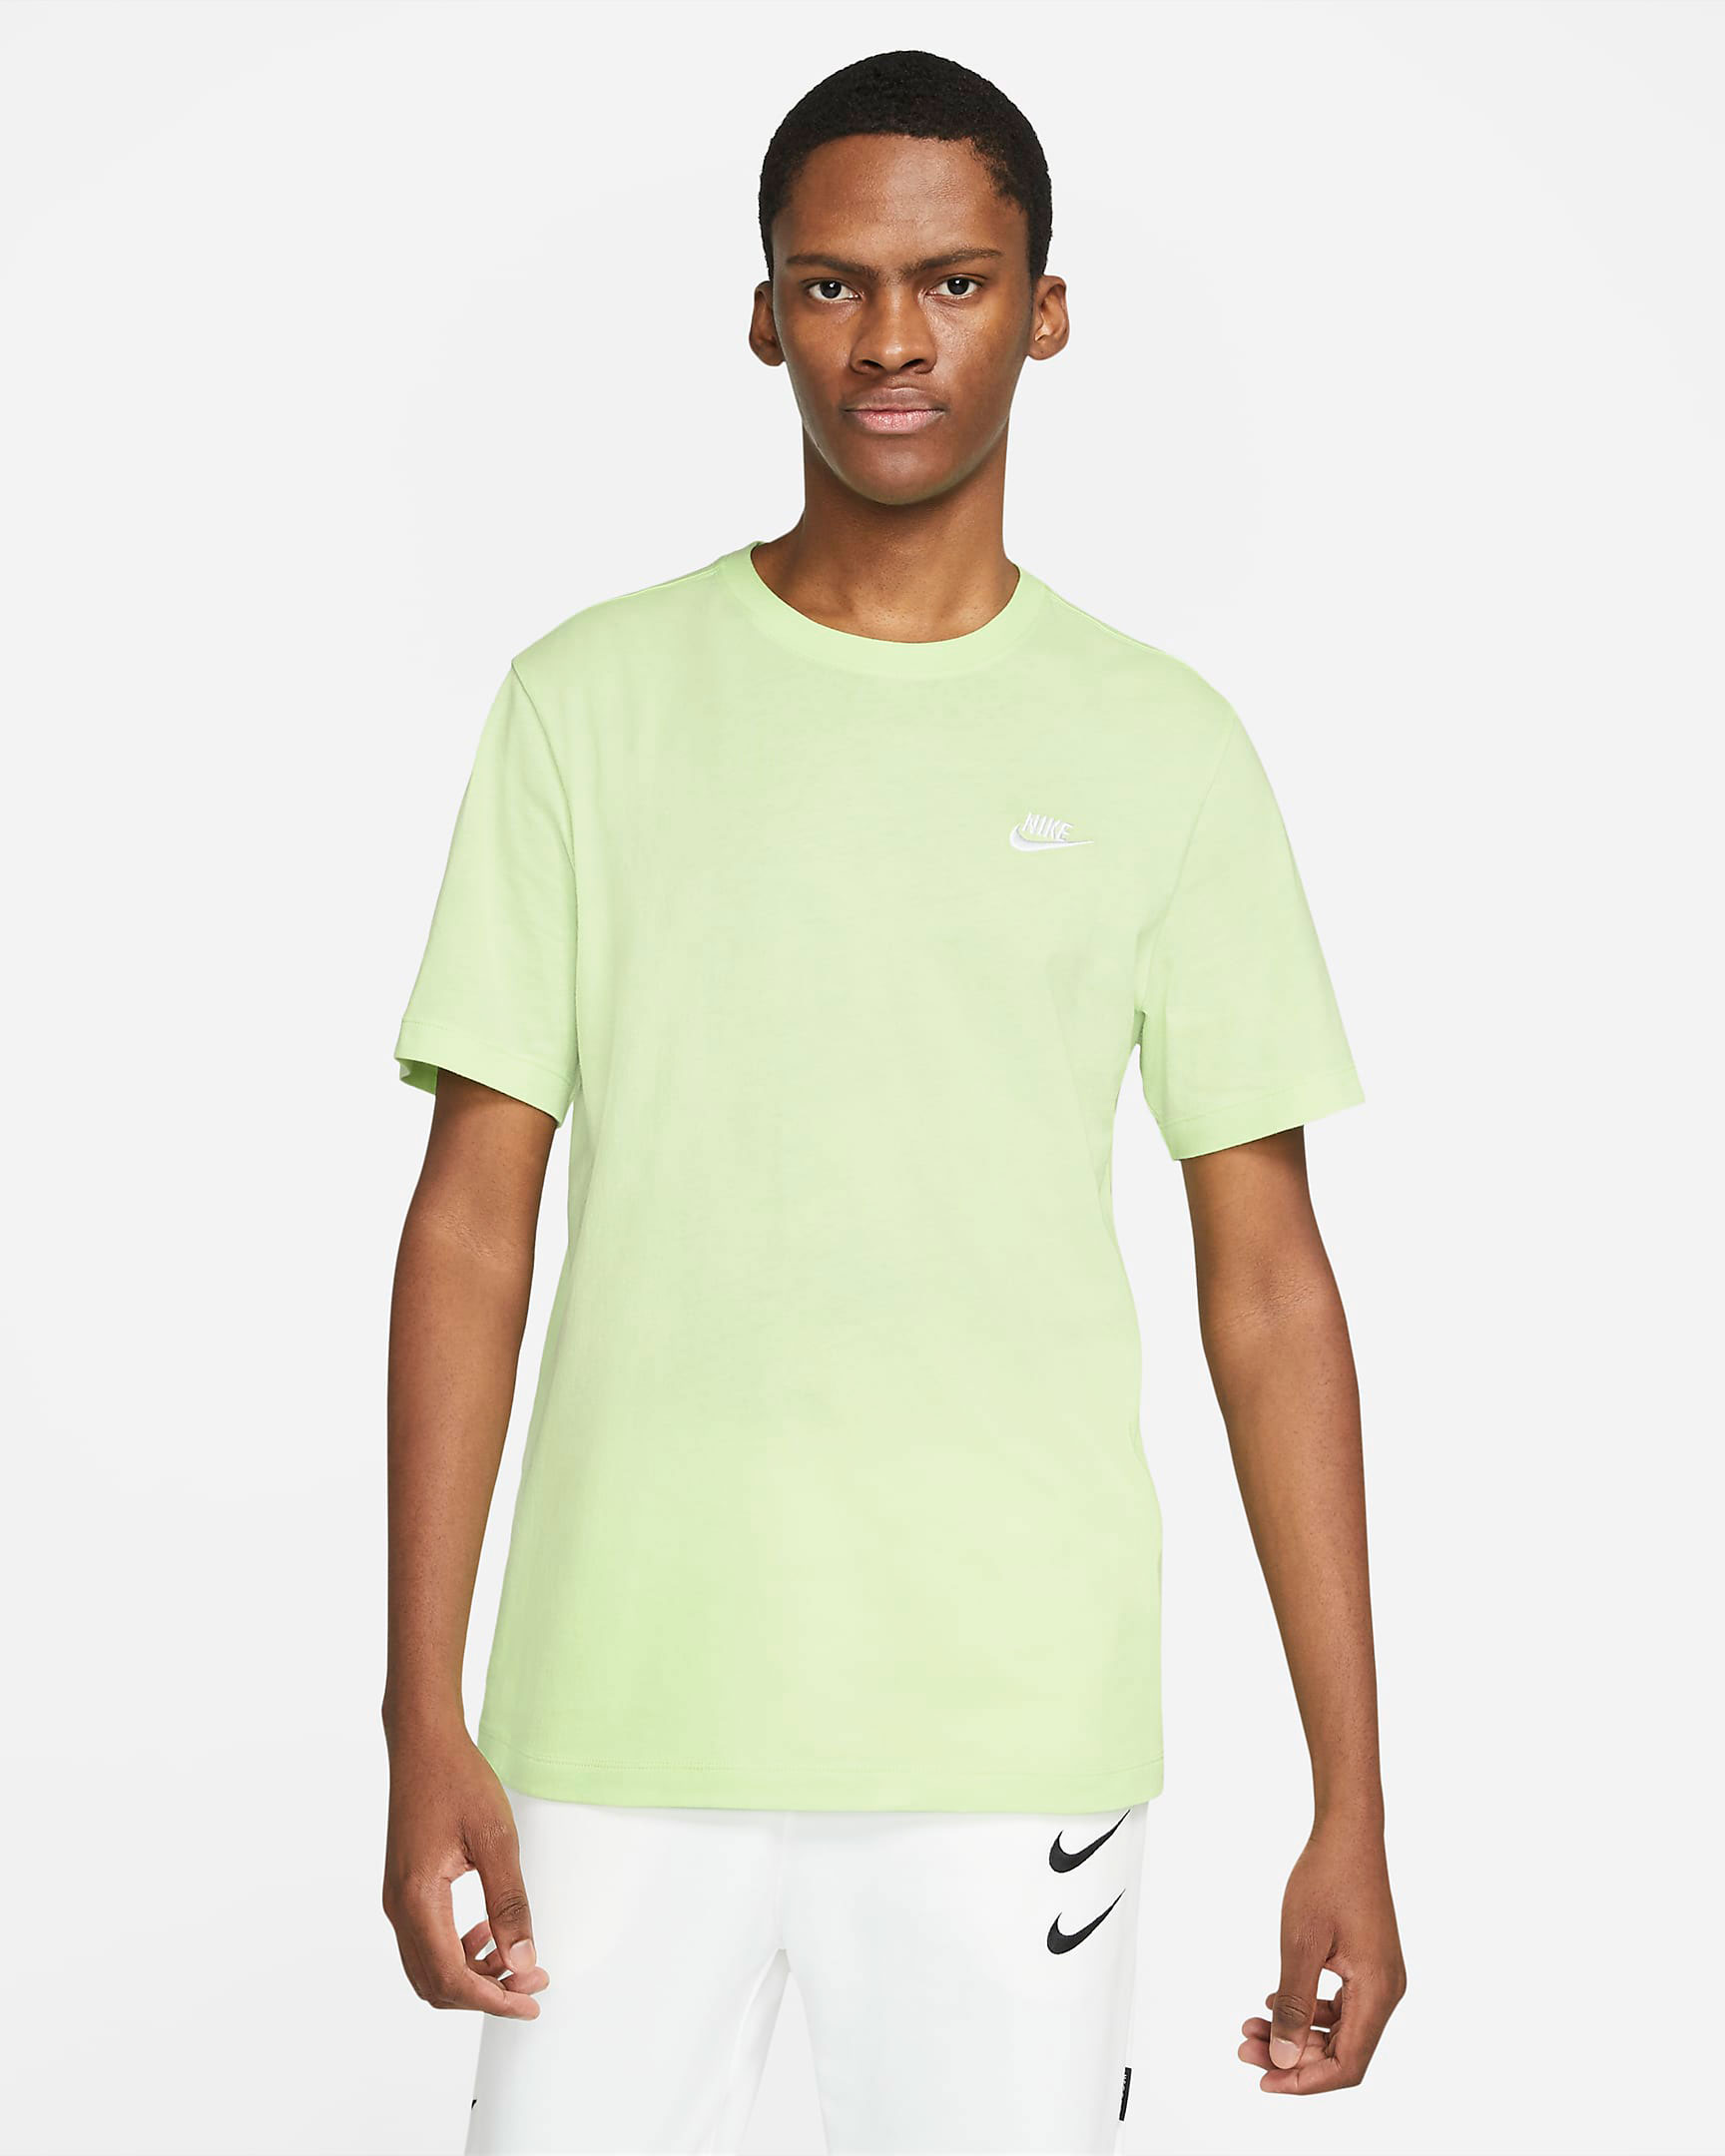 nike-sportswear-light-liquid-lime-t-shirt